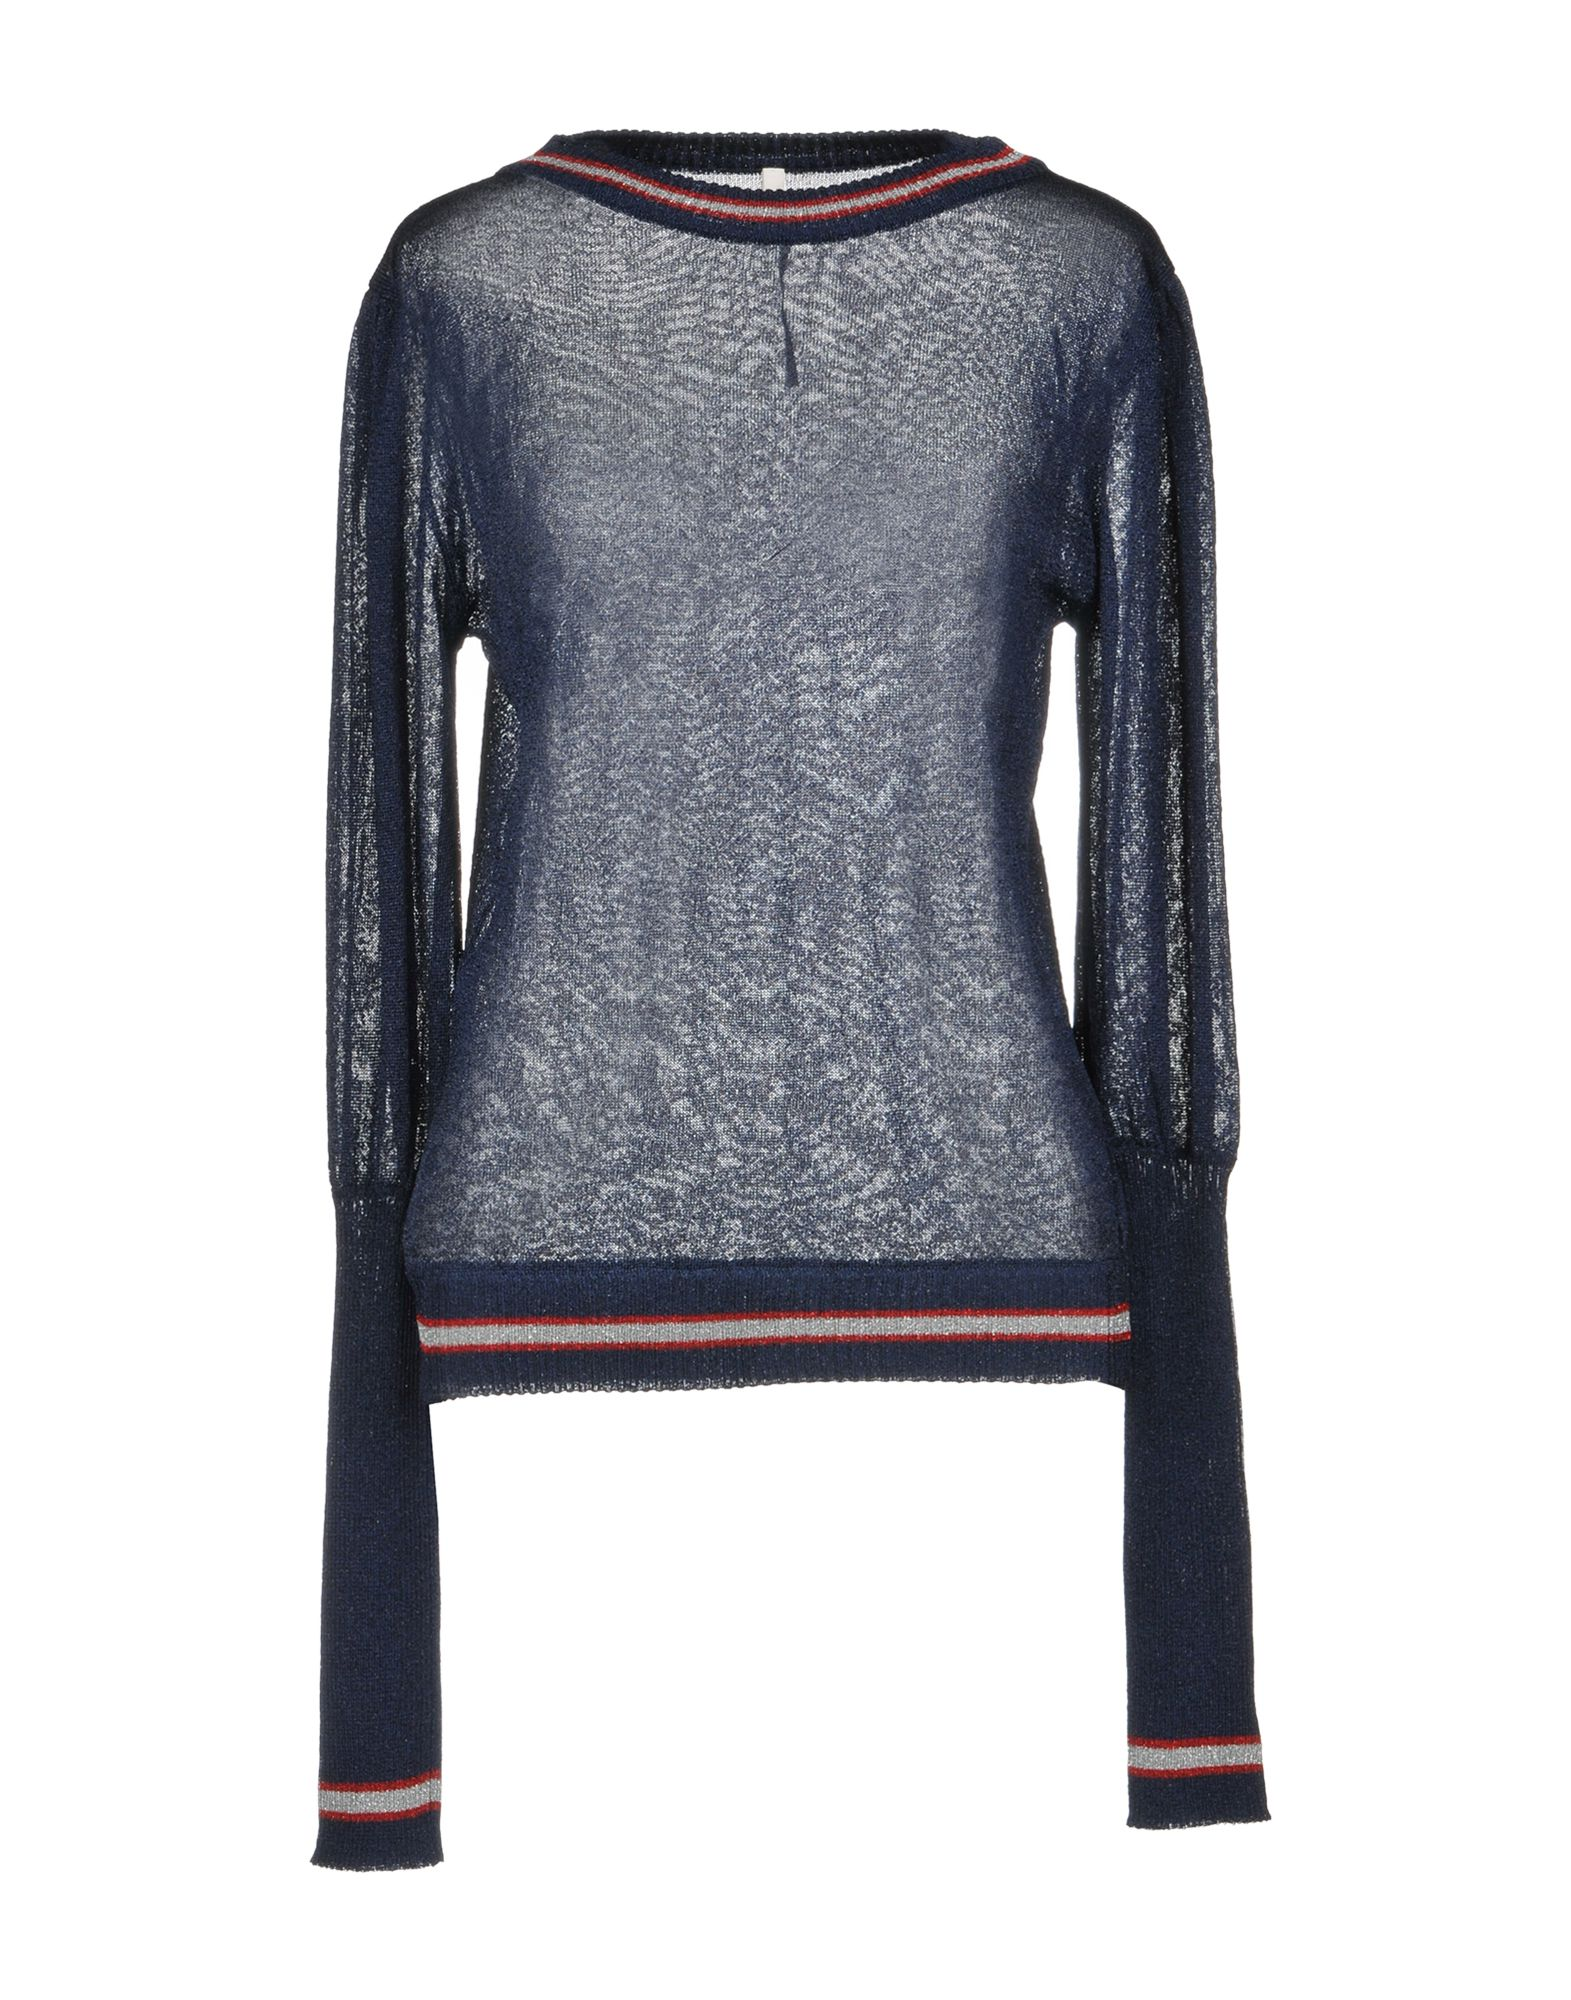 MIAHATAMI Sweater in Dark Blue